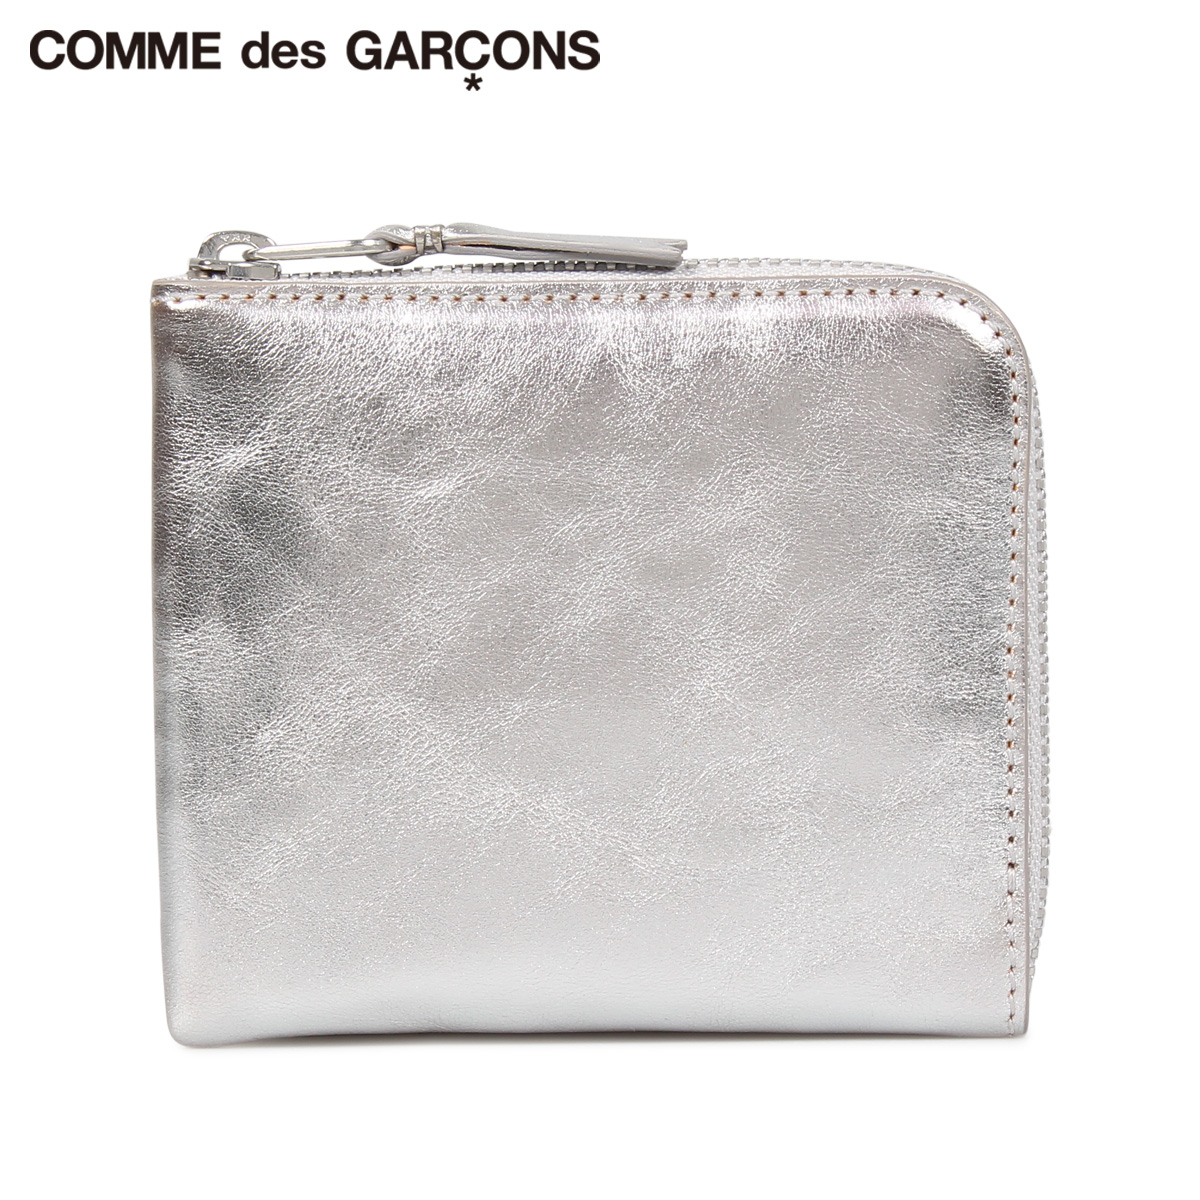 COMME des GARCONS GOLD AND SILVER WALLET コムデギャルソン 財布 ミニ財布 メンズ レディース L字ファスナー 本革 シルバー SA3100G [10/10 新入荷]